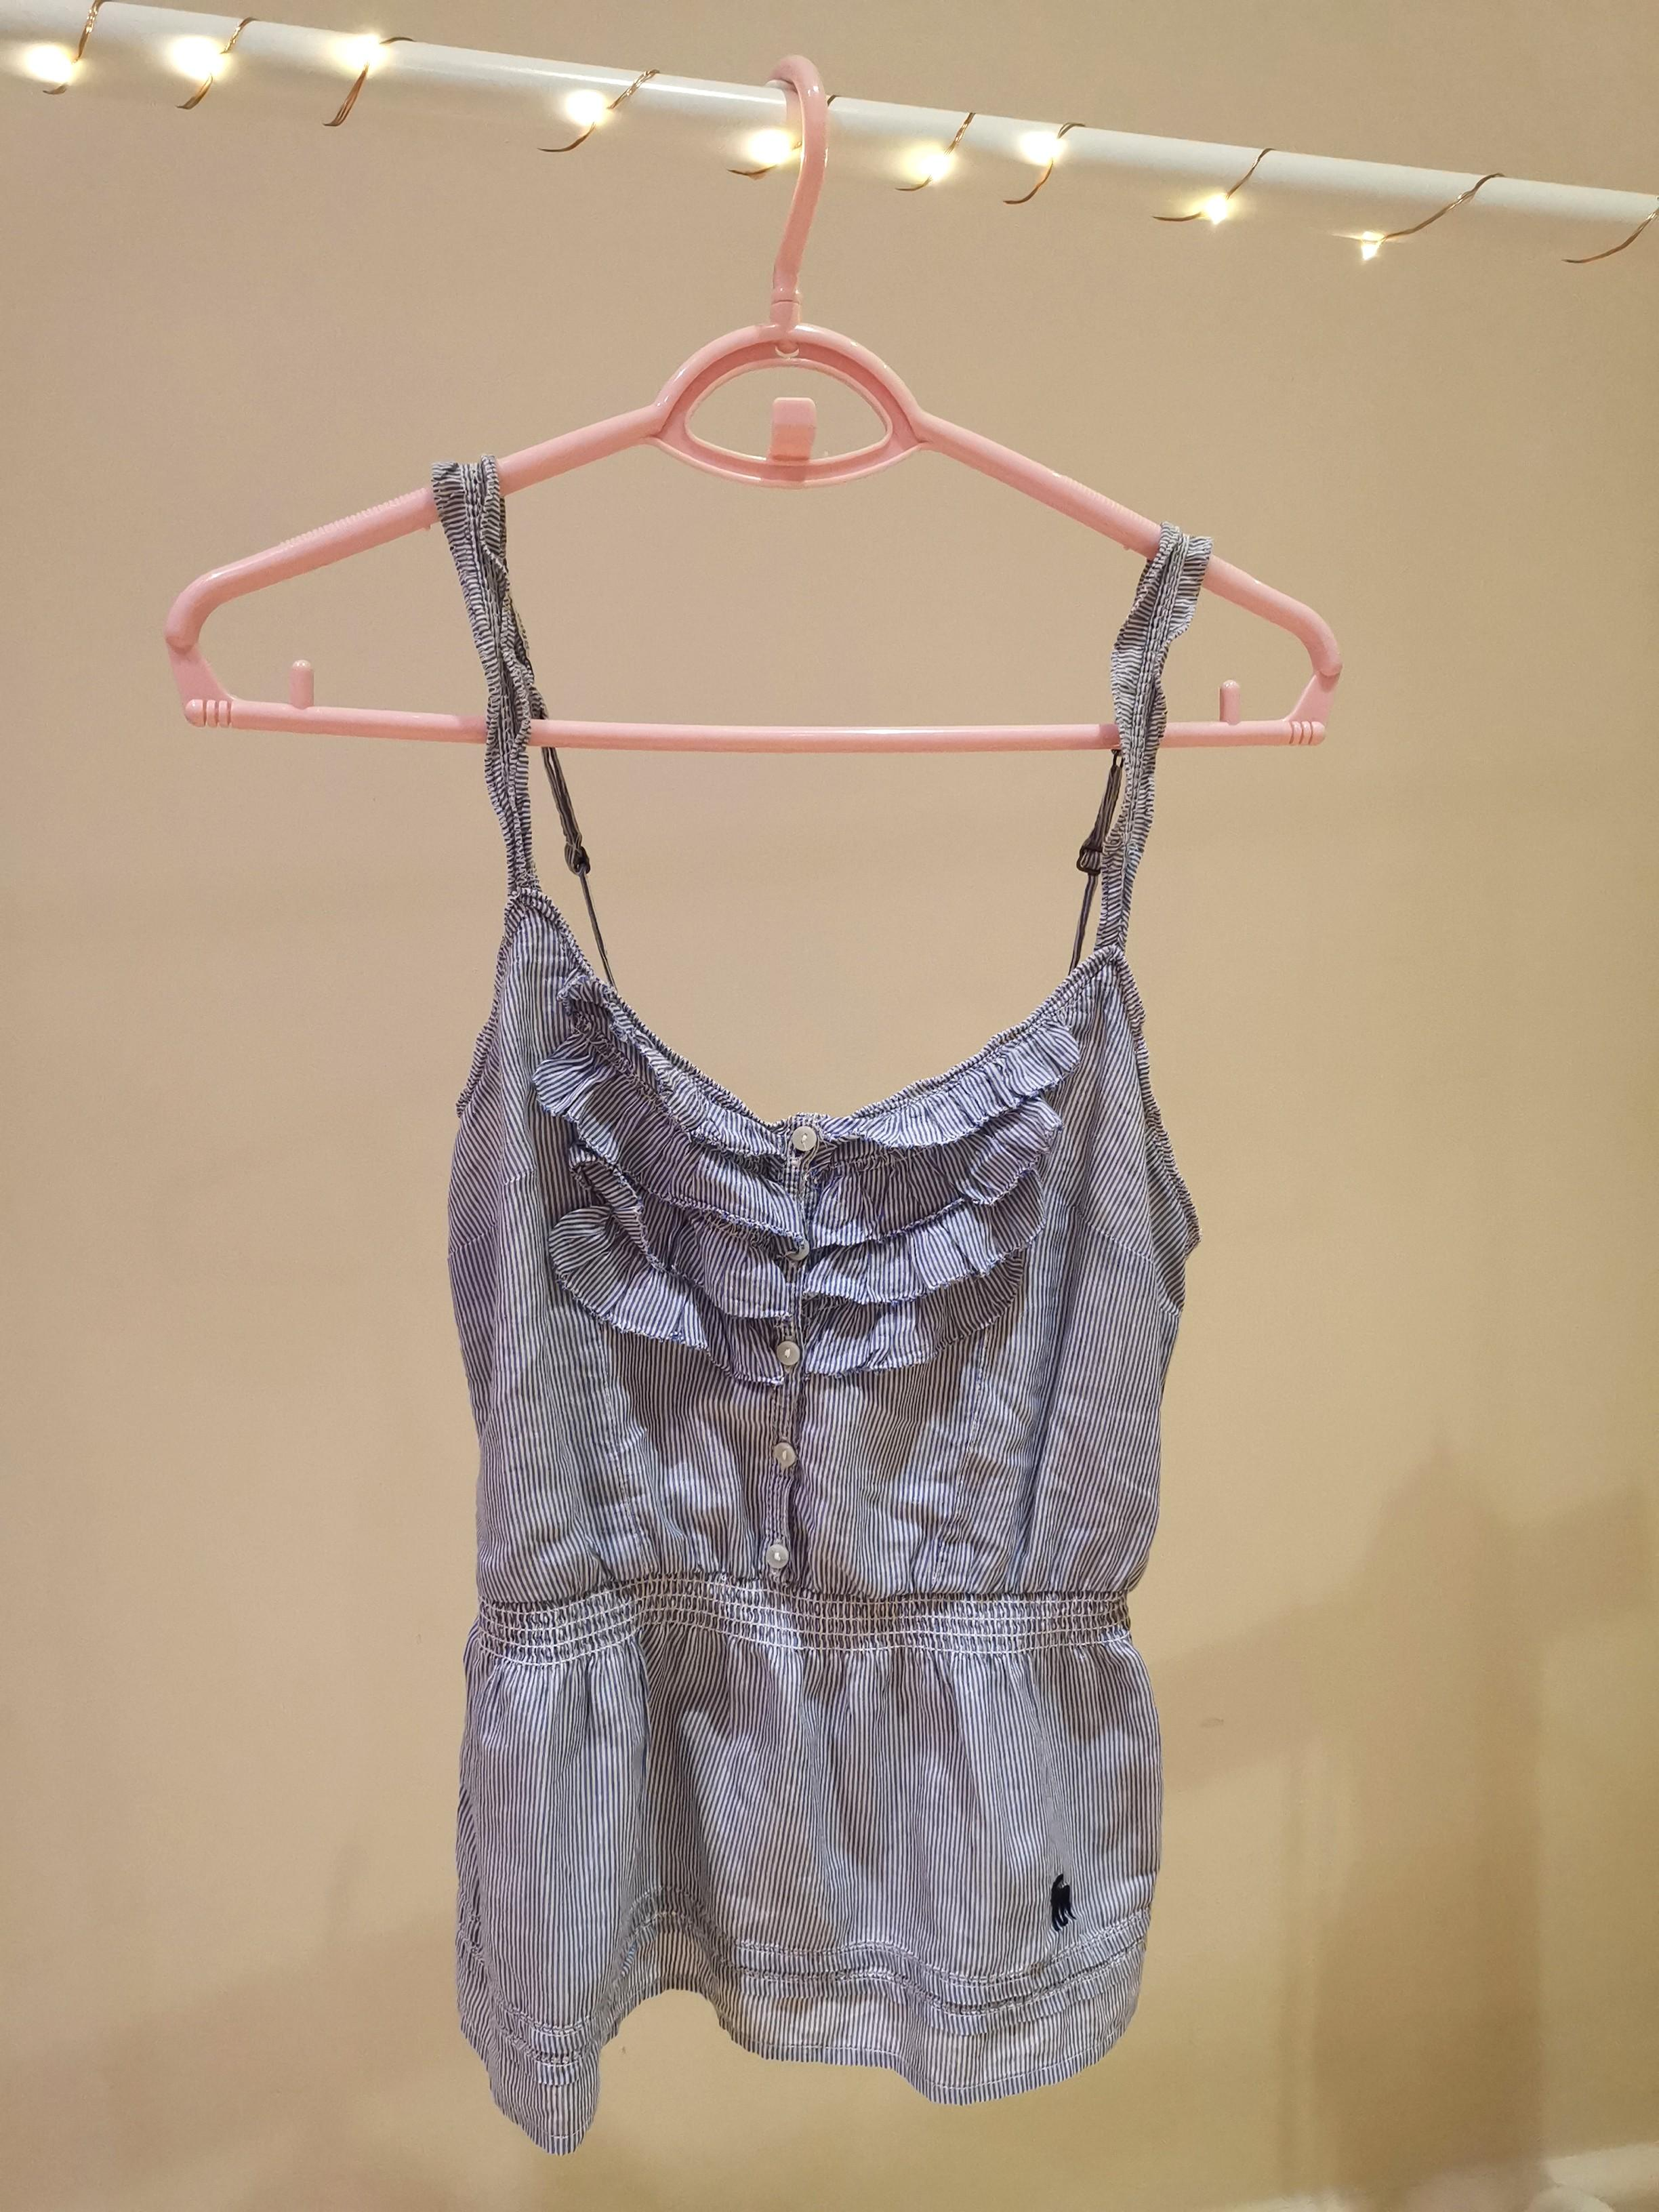 Abercrombie and Finch top